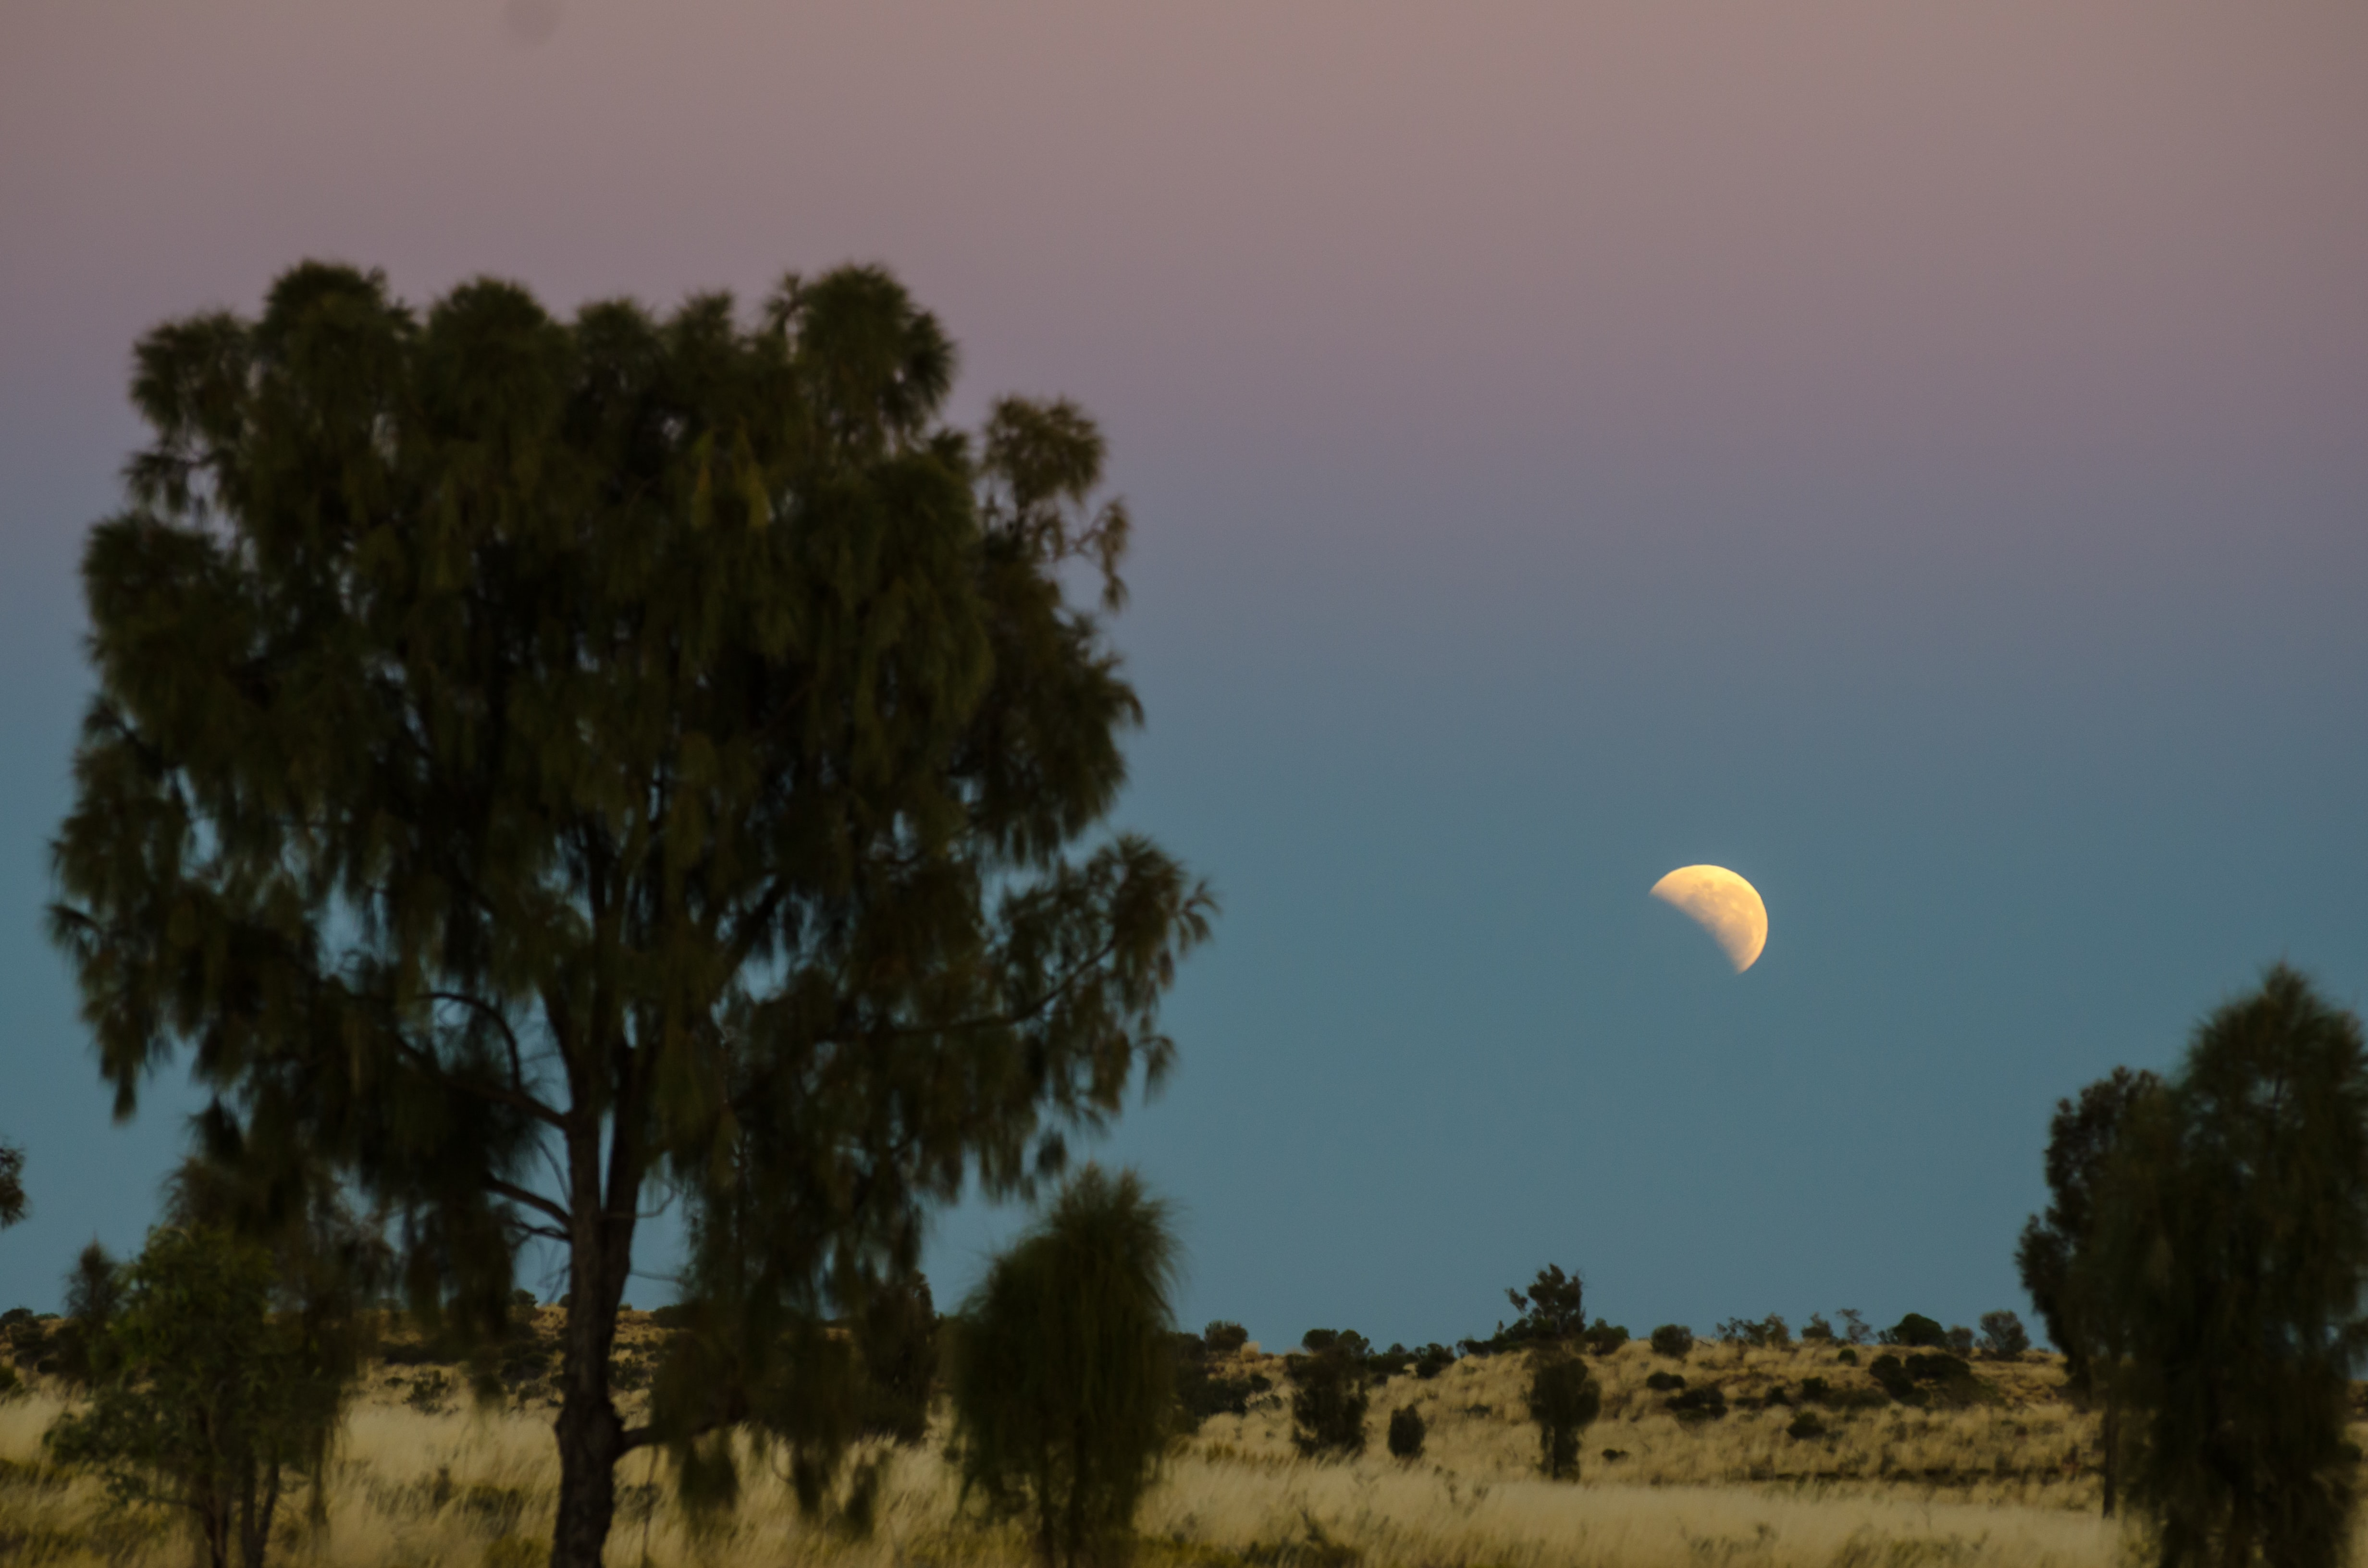 trees on field under crescent moon